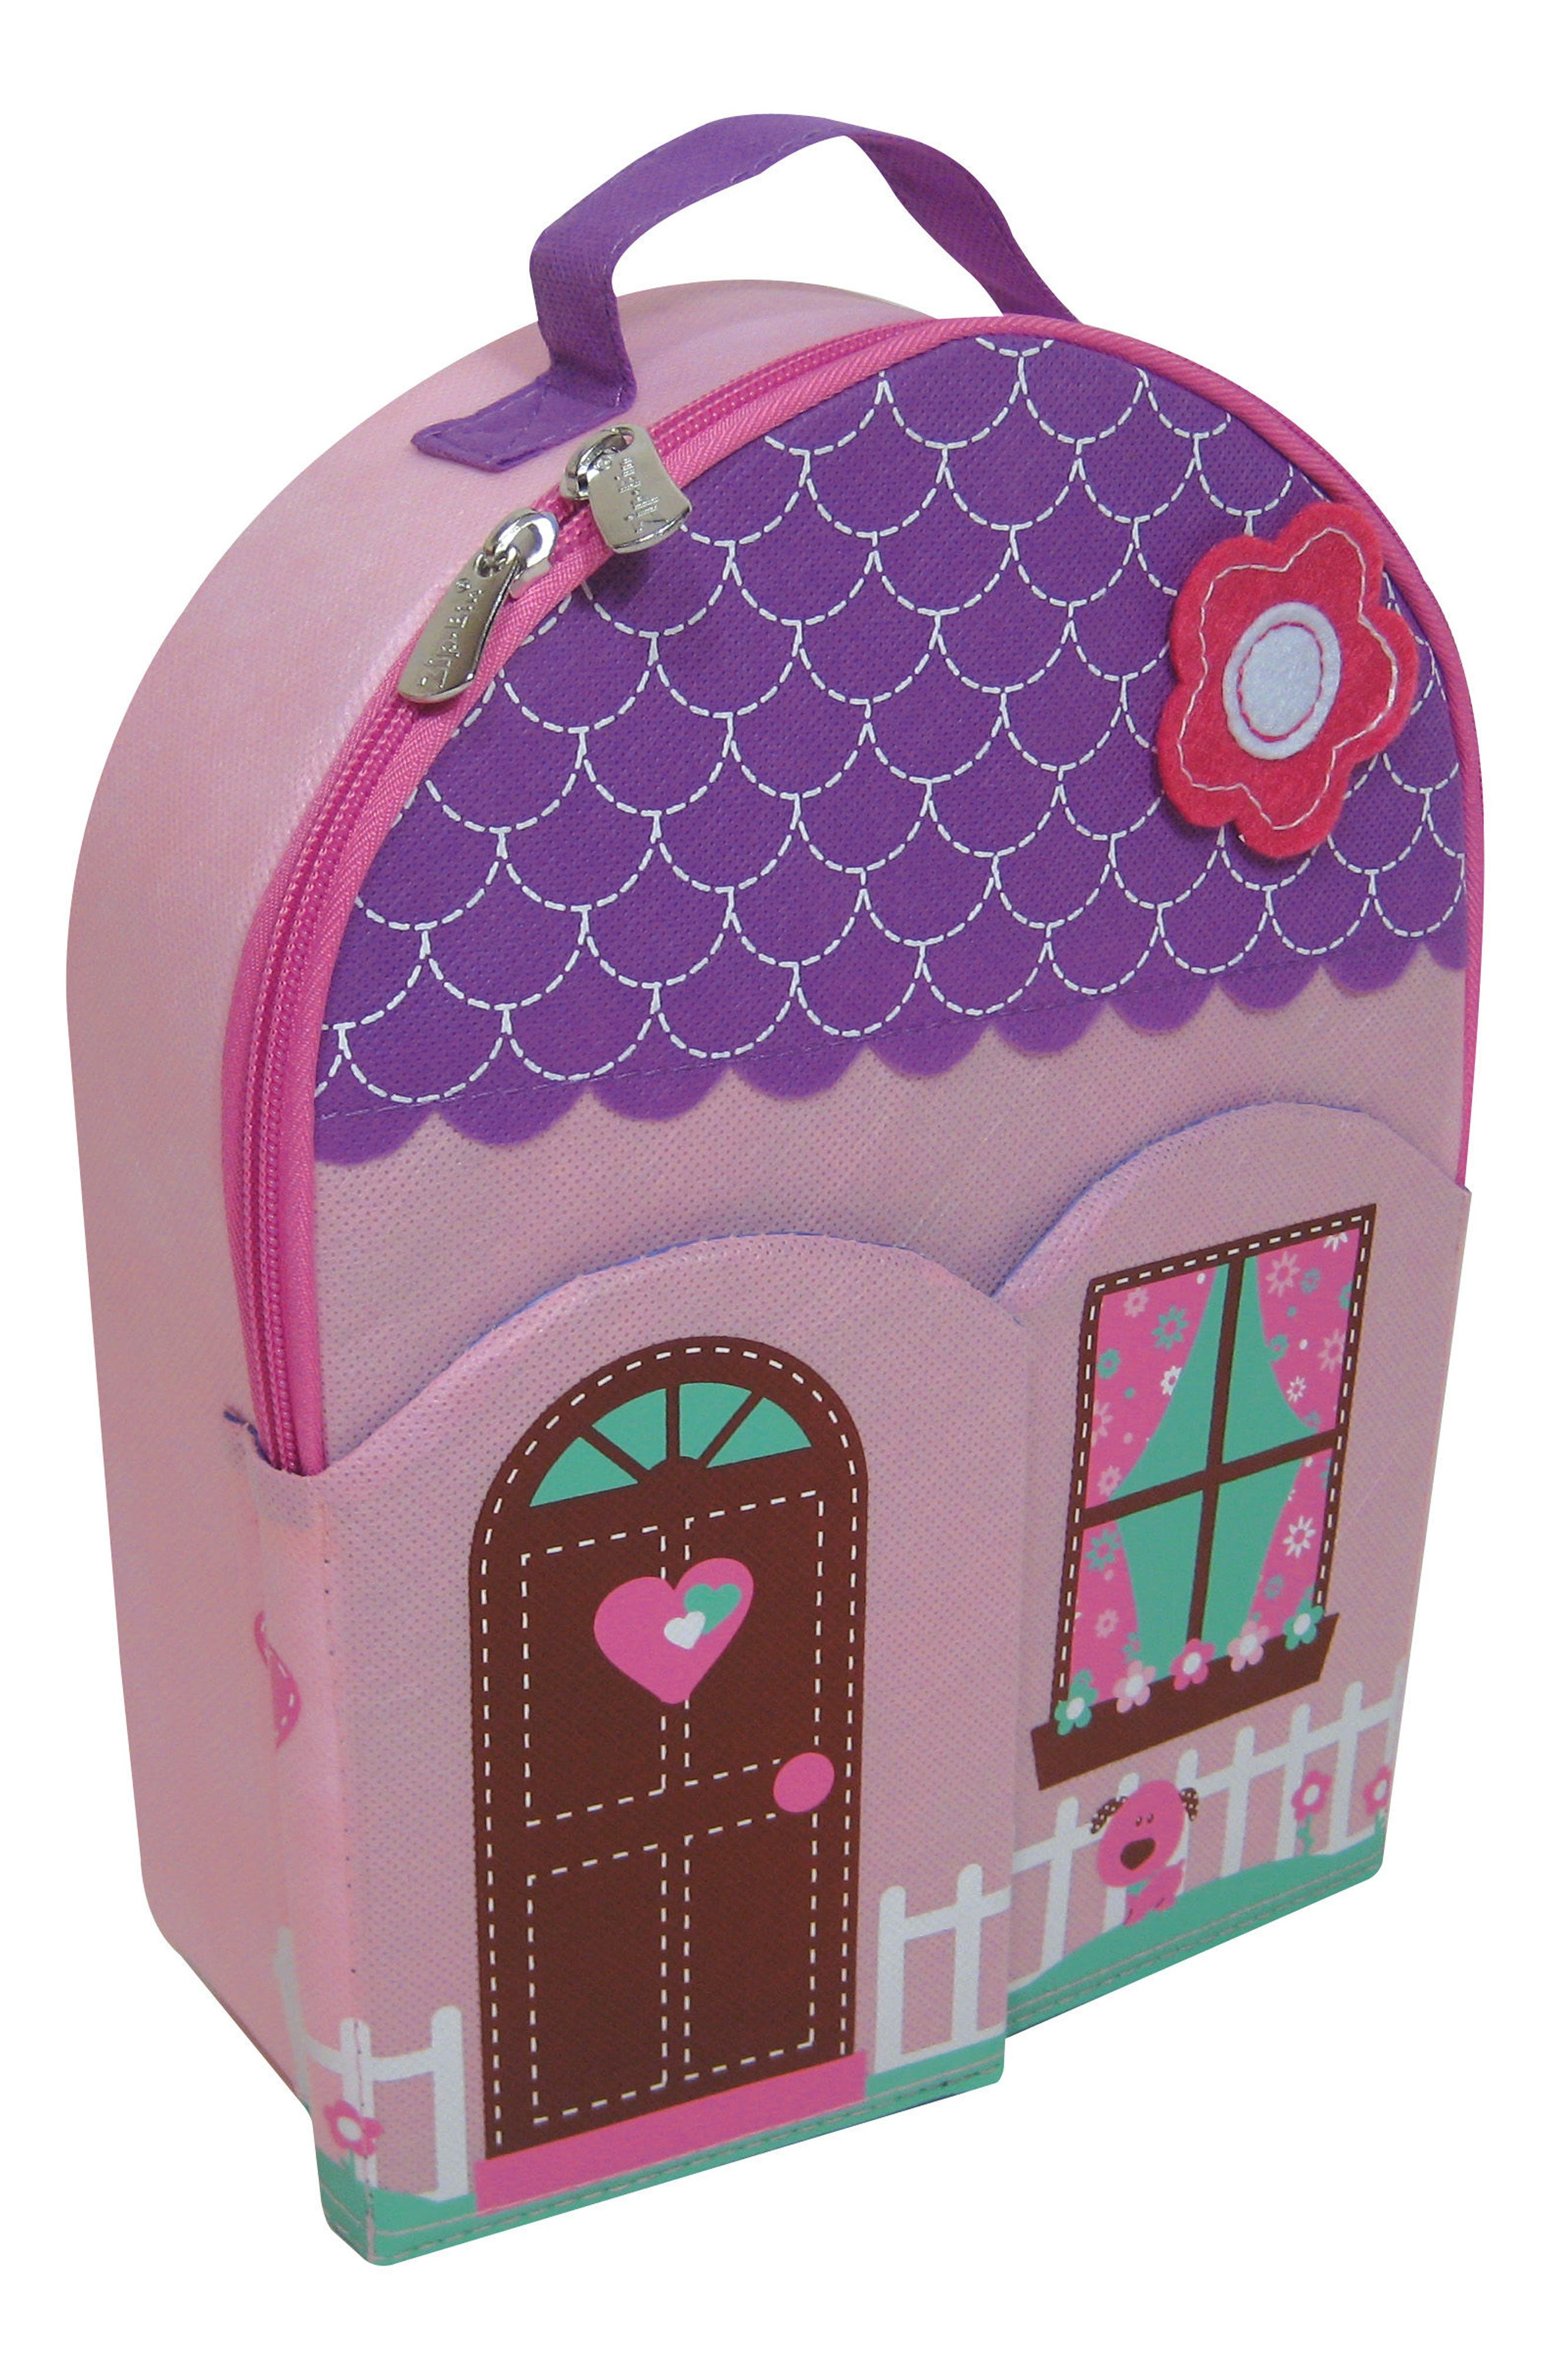 Neat Oh! Everyday Princess Doll & Dollhouse Backpack Set